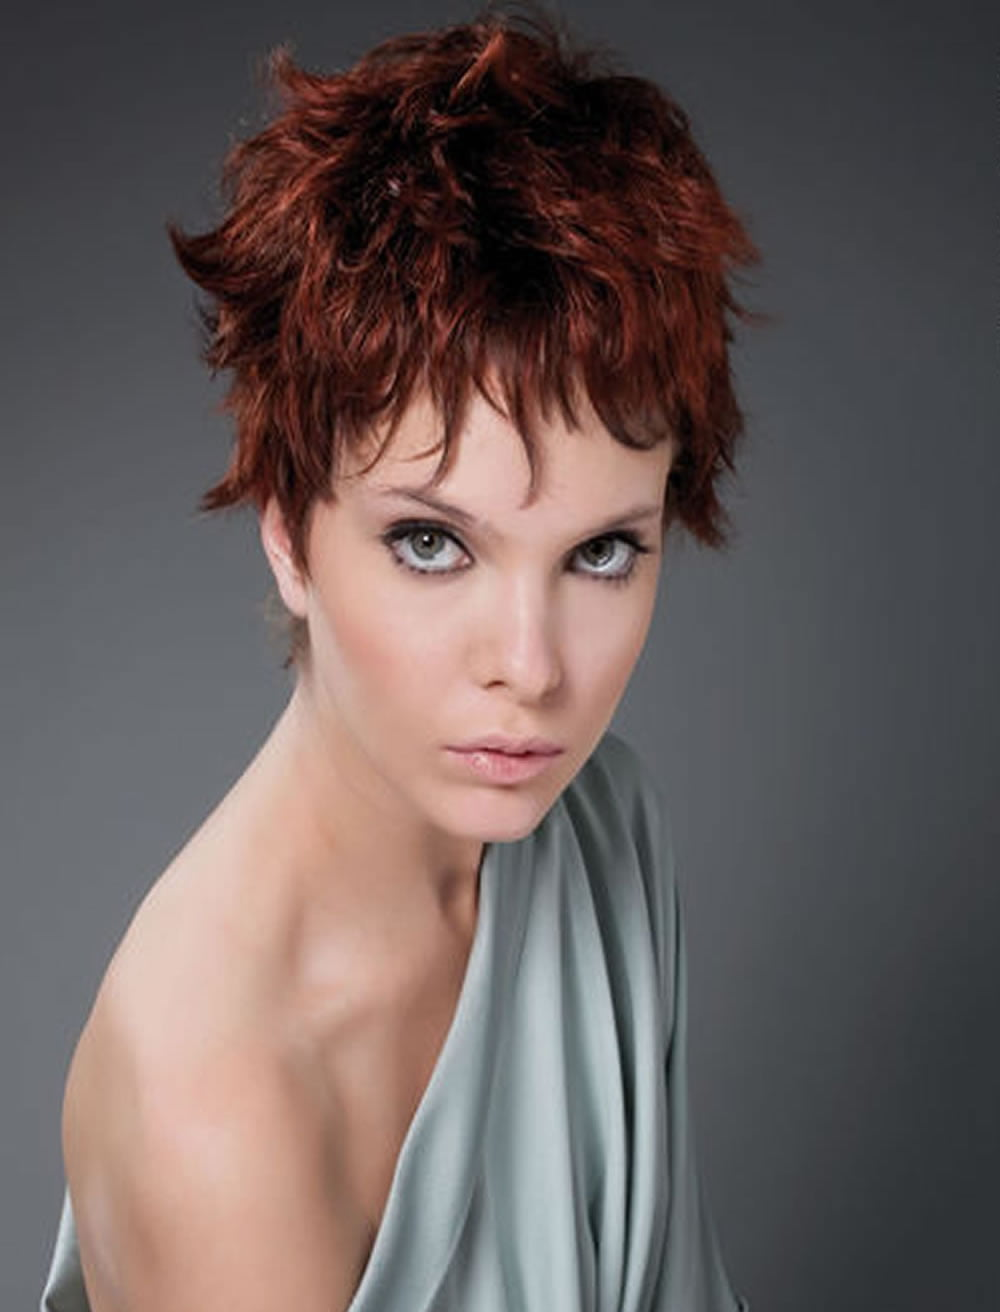 27 Short Pixie Haircuts You'll See Trending in 2019 - Page 3 - HAIRSTYLES